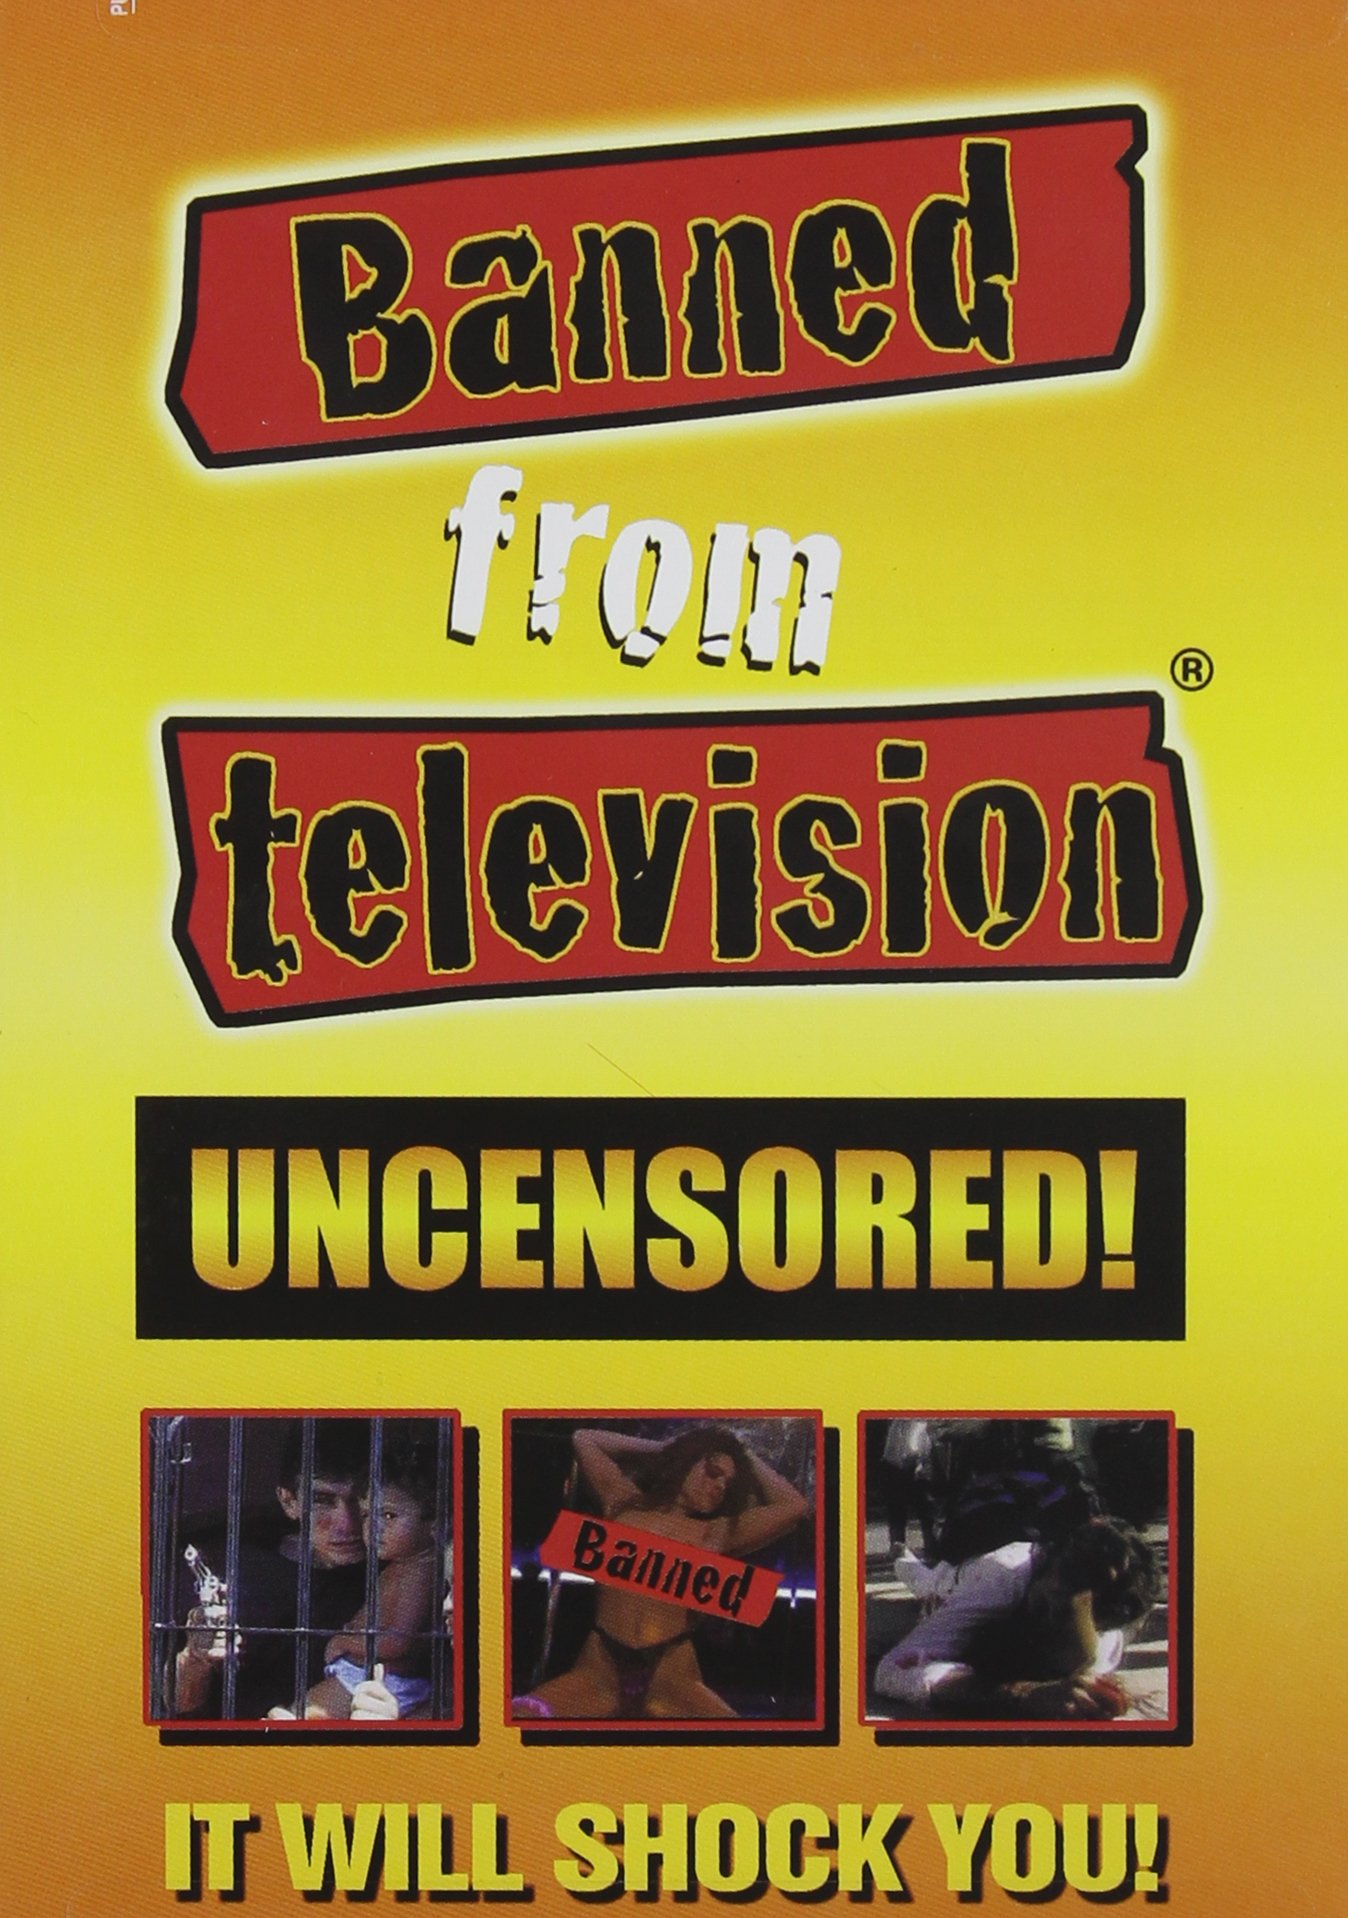 Banned From Television, Uncensored! by Ggw Brands